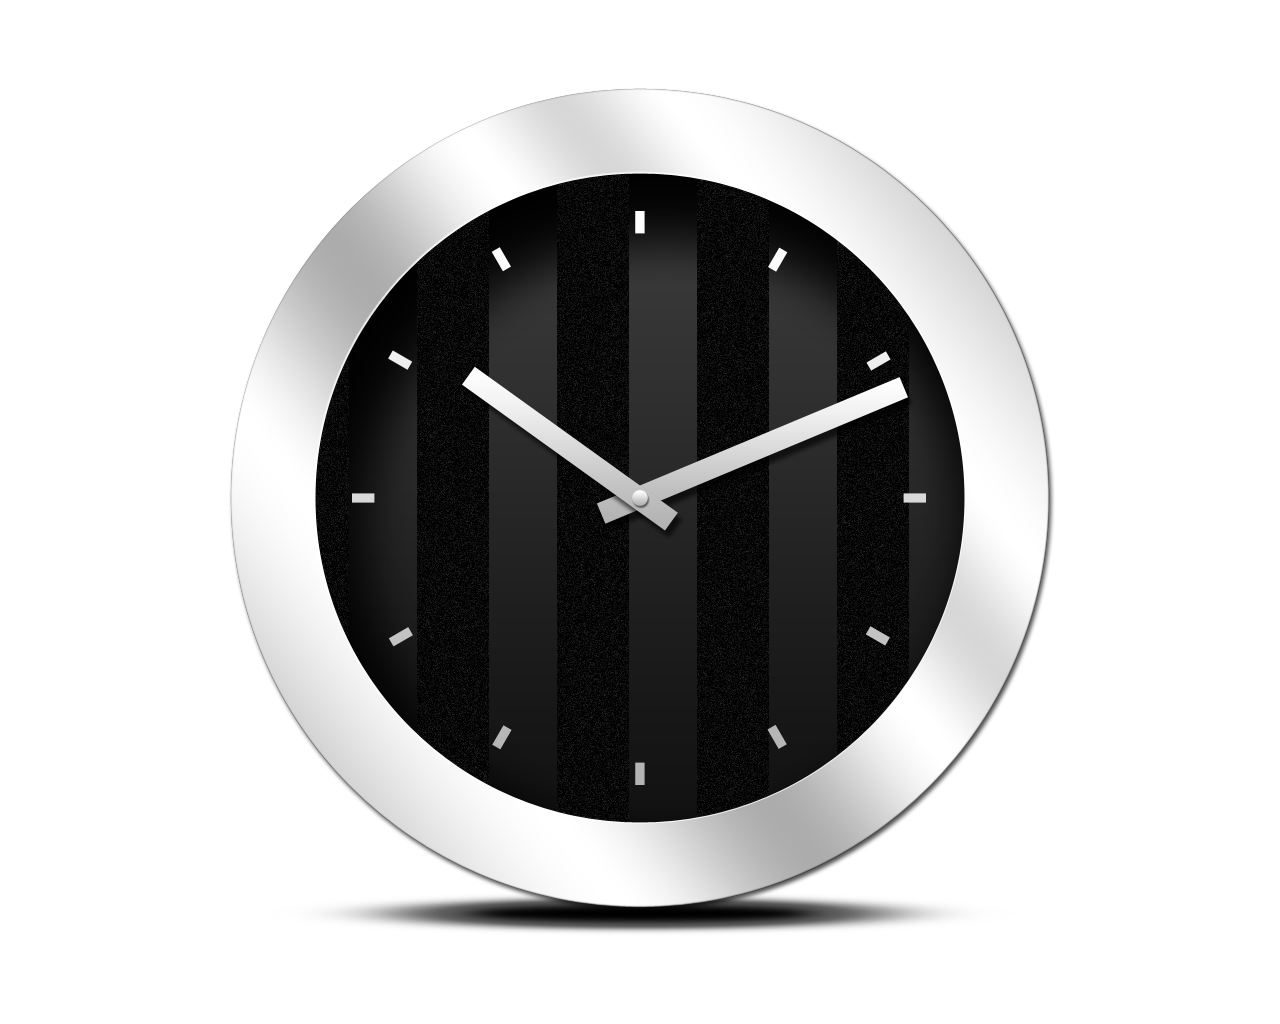 Men's Wrist Band Watch PNG Image Clock icon, Clock